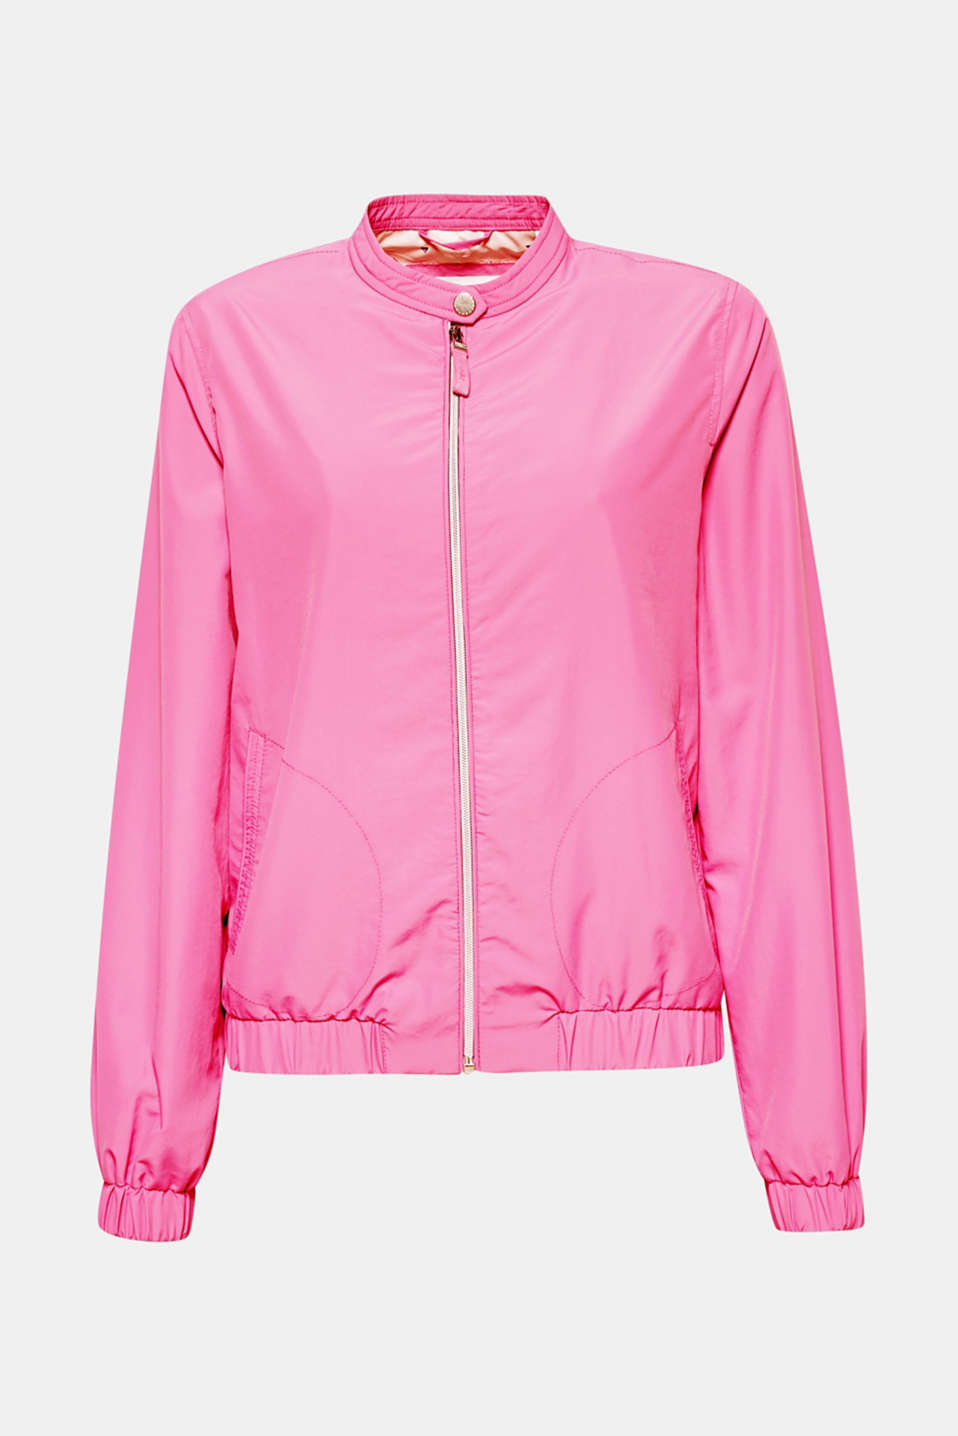 Start off spring in style with this lightweight bomber jacket in a clean, sporty style!